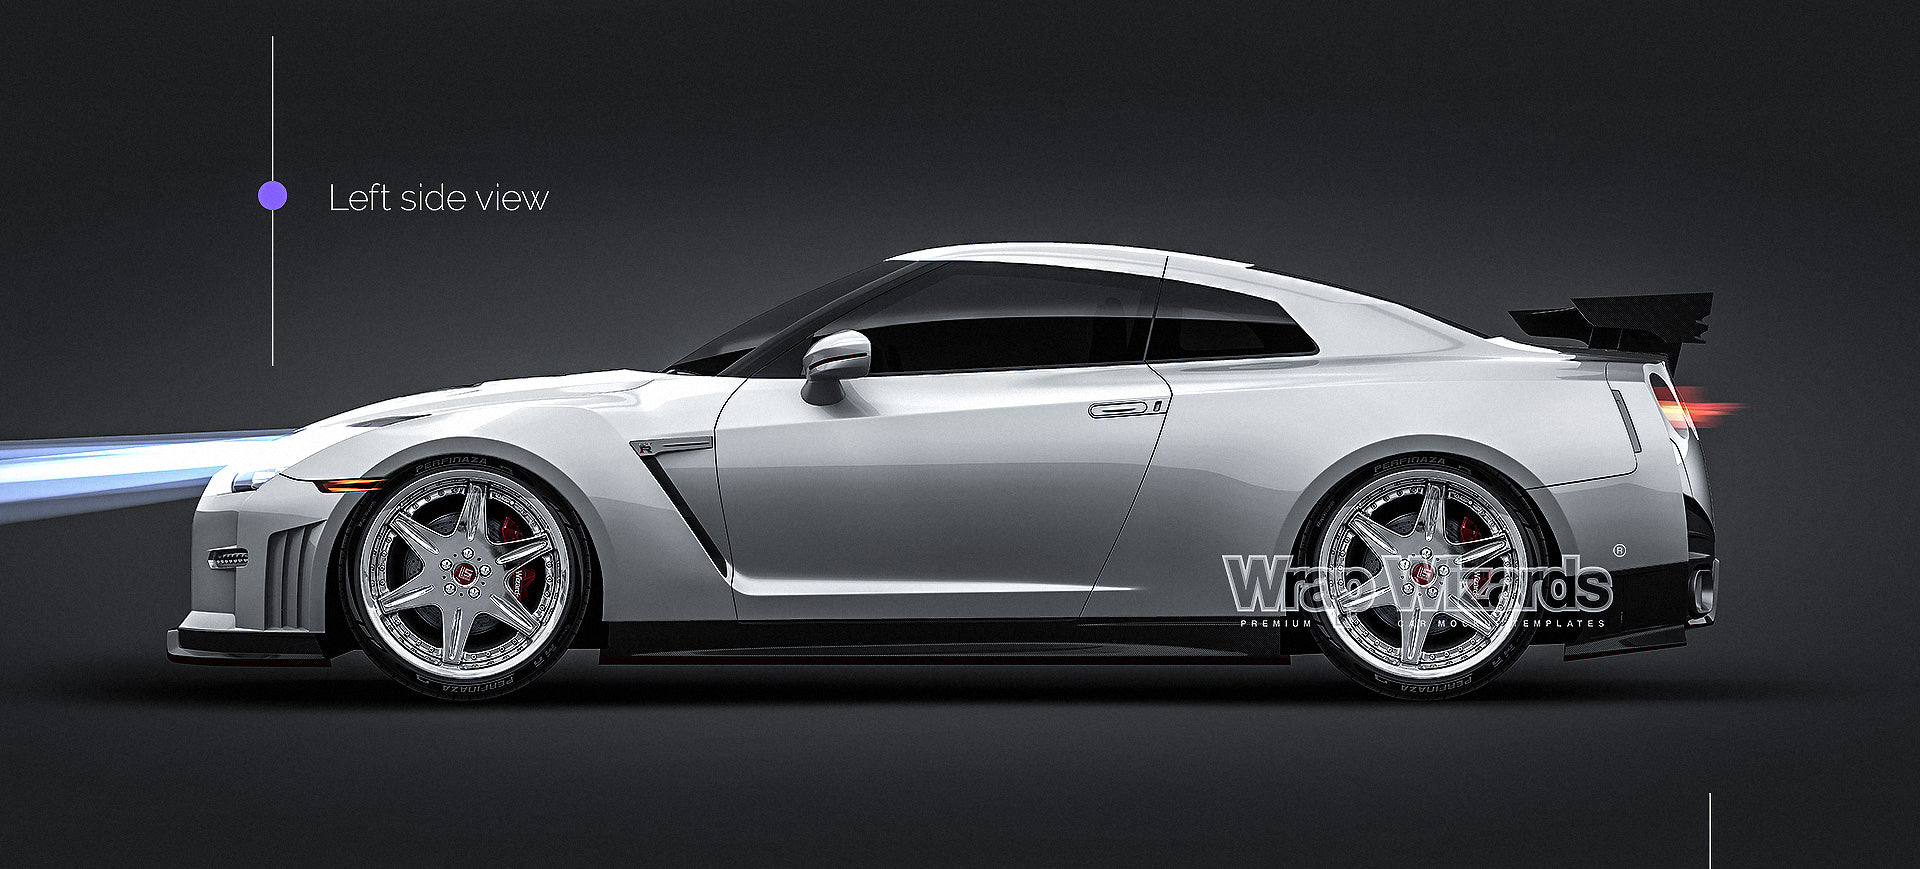 Nissan GT-R Nismo 2015 all sides Car Mockup Template.psd